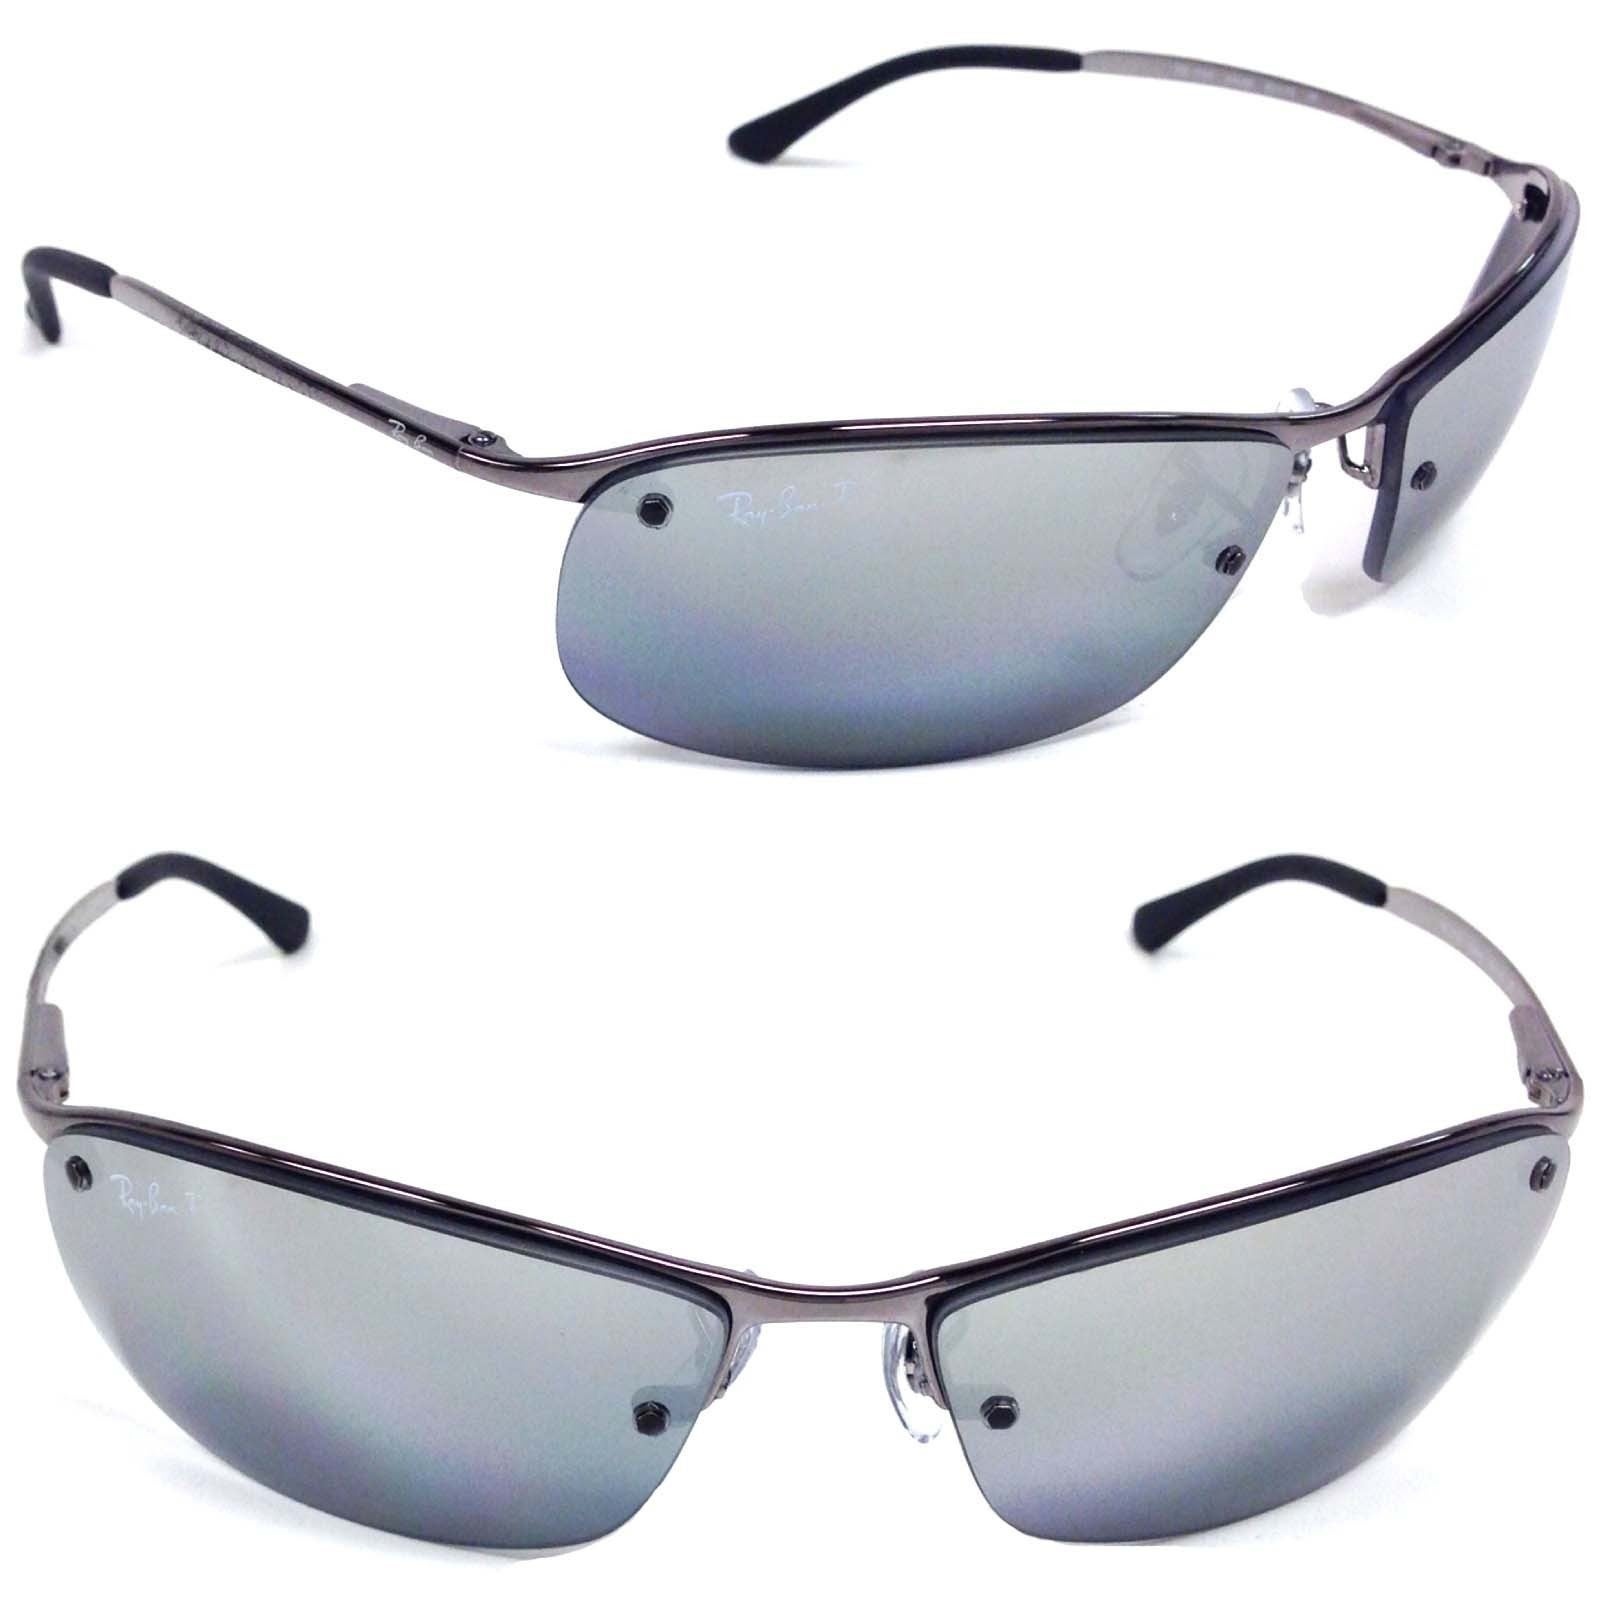 41b928df44bddc Shop Ray-Ban RB3183 63mm Polarized Silver Mirror Lenses Gunmetal Frame  Sunglasses - Free Shipping Today - Overstock - 10520567